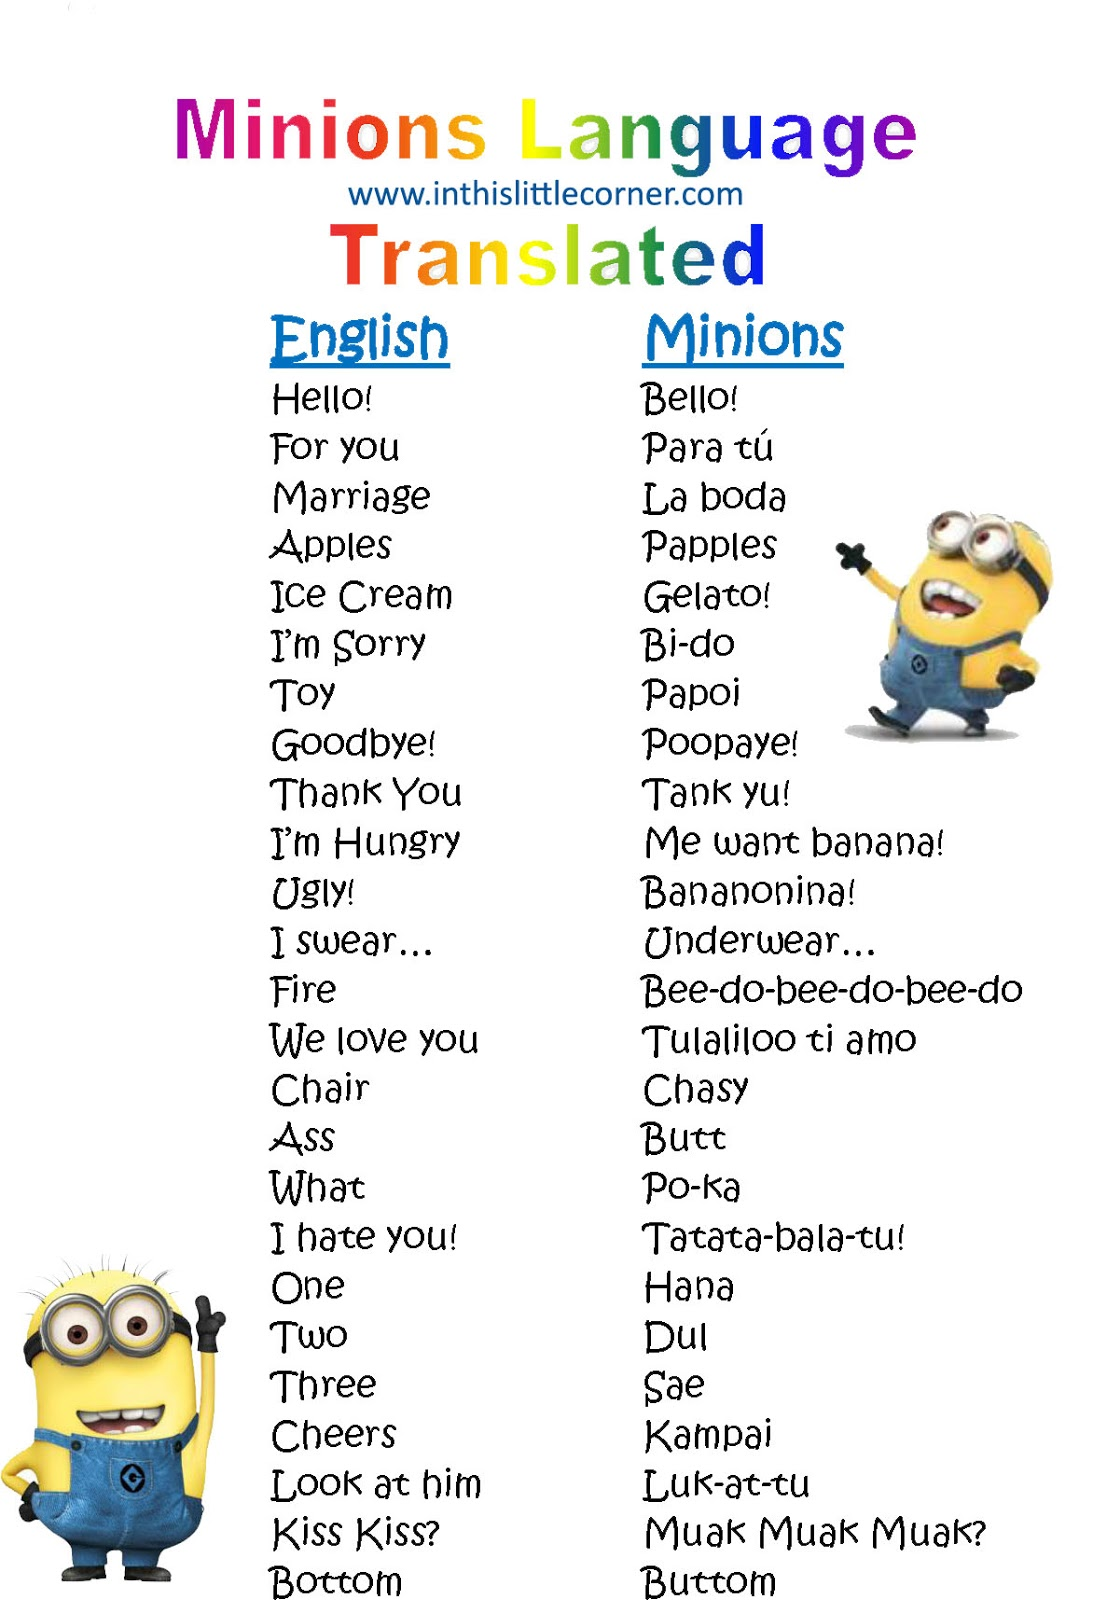 In this little corner: Minion Language Translated ...